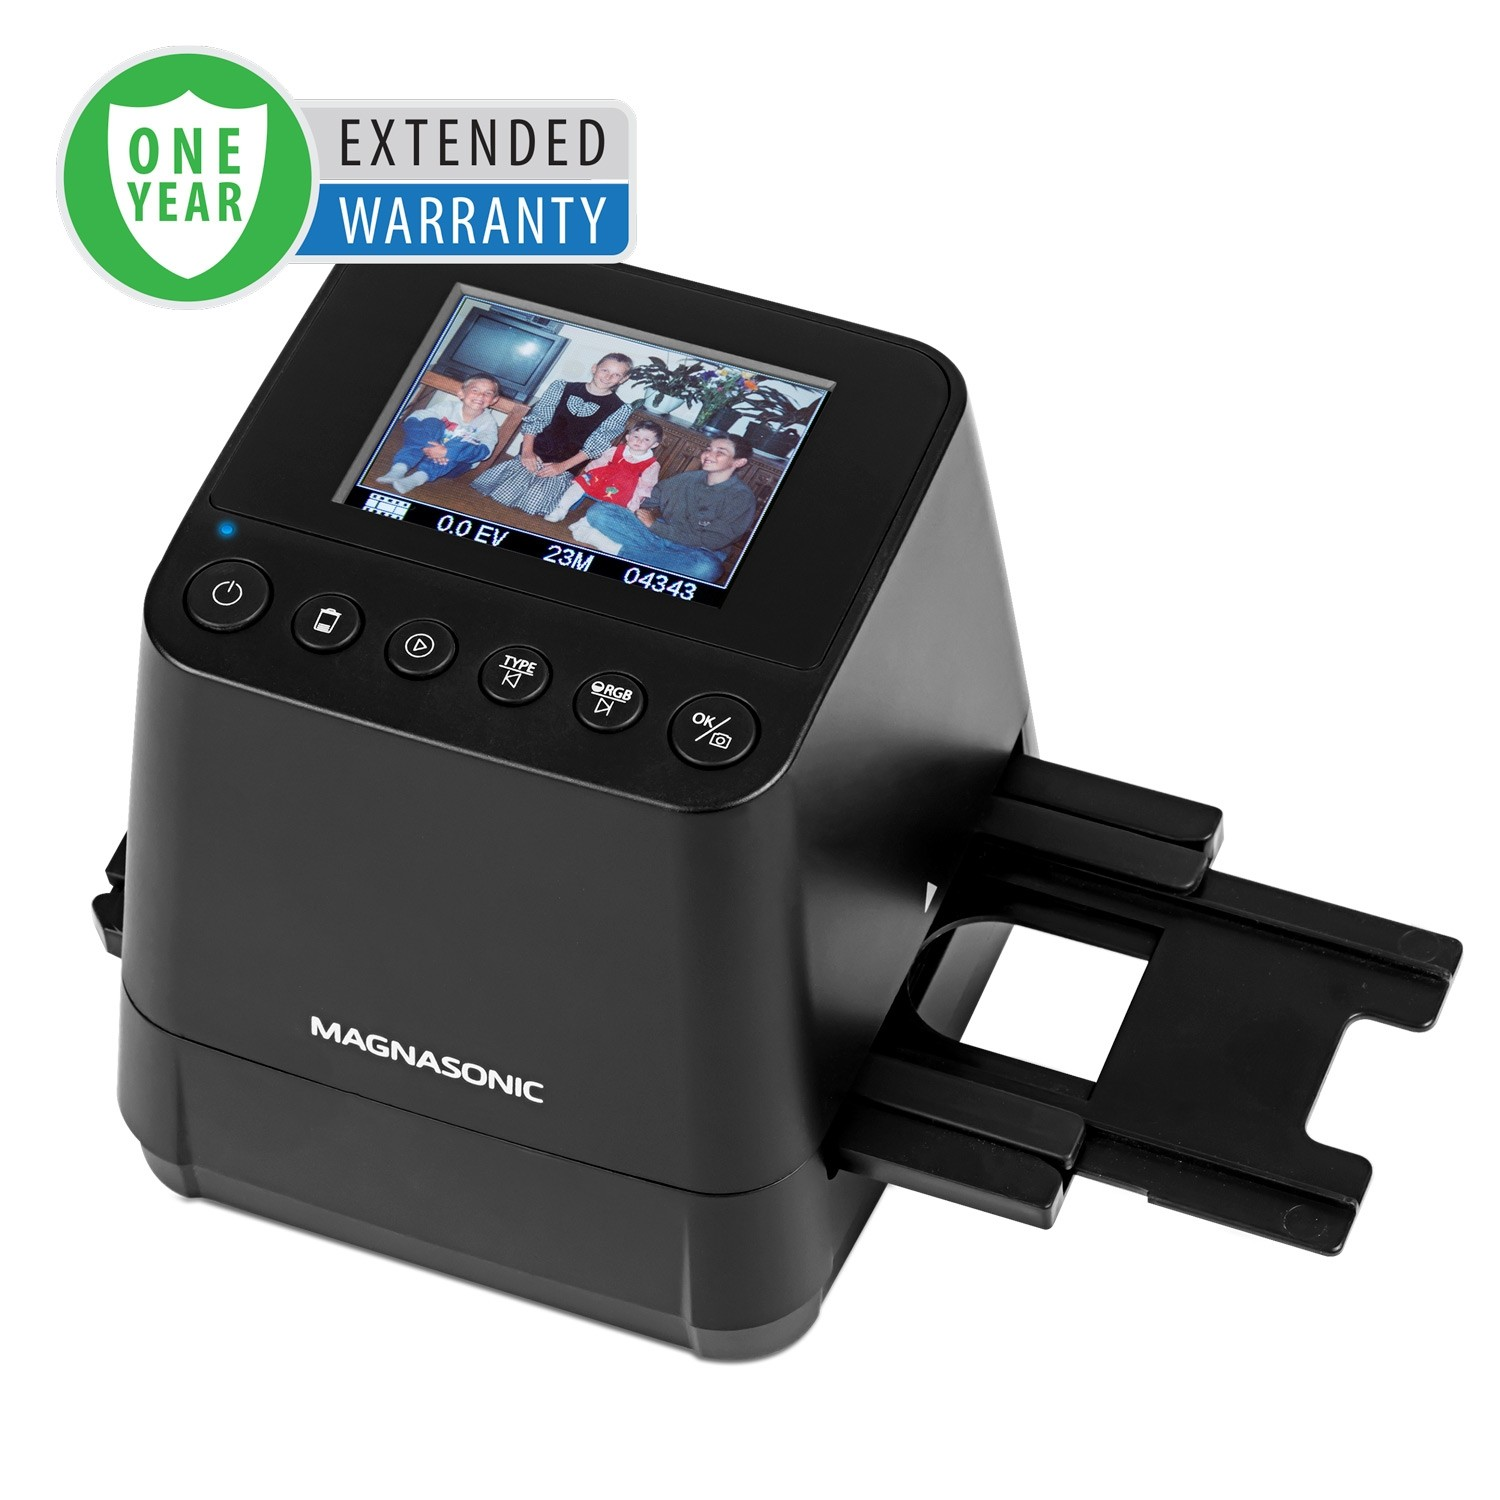 1 Year Warranty for the All-In-One 23MP Film Scanner